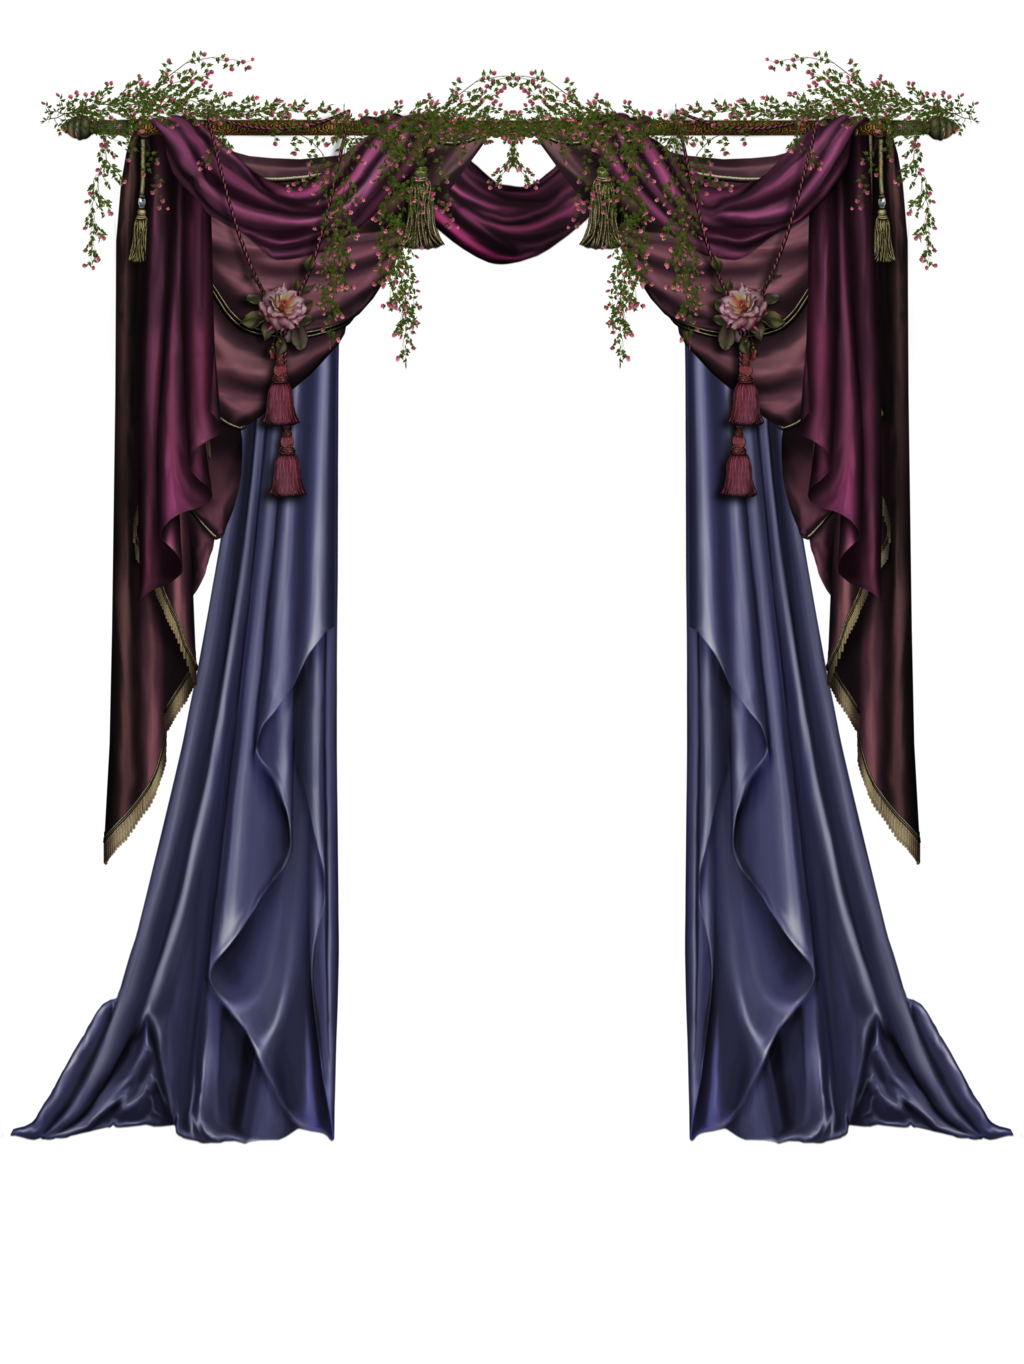 Gothic curtains png